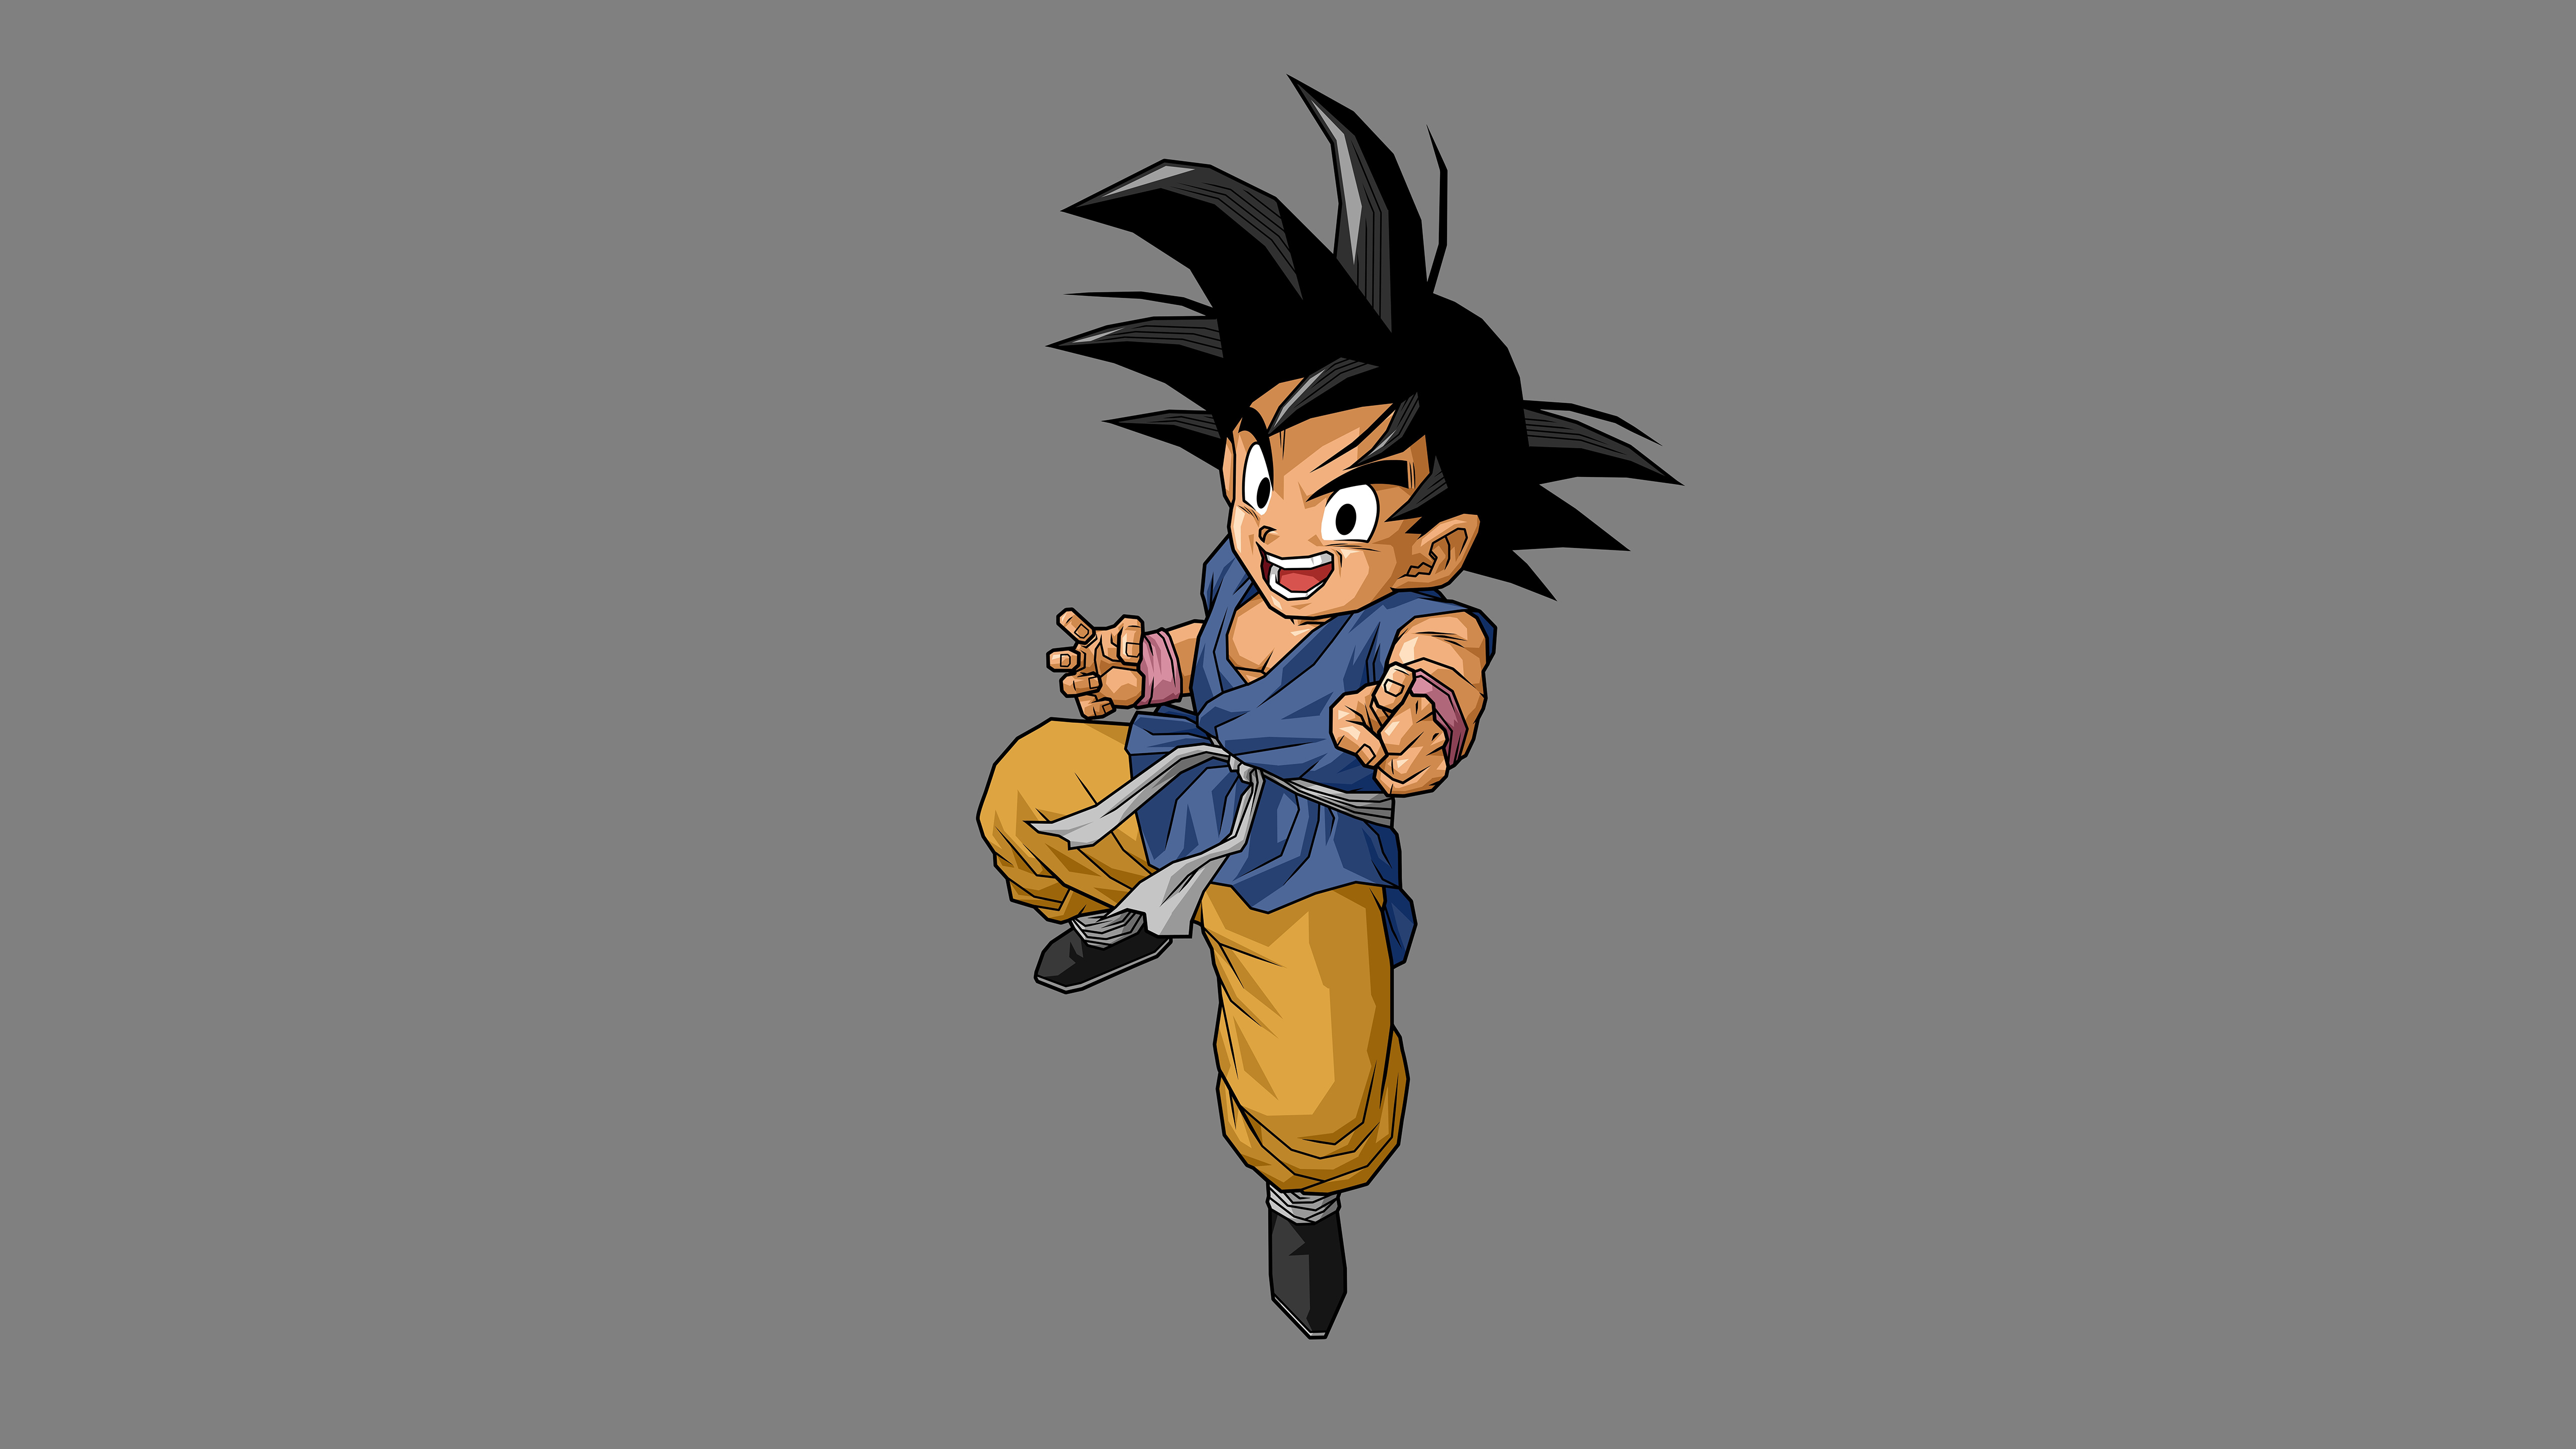 Dragon ball son goku 5k minimalism hd anime 4k - 5k anime wallpaper ...